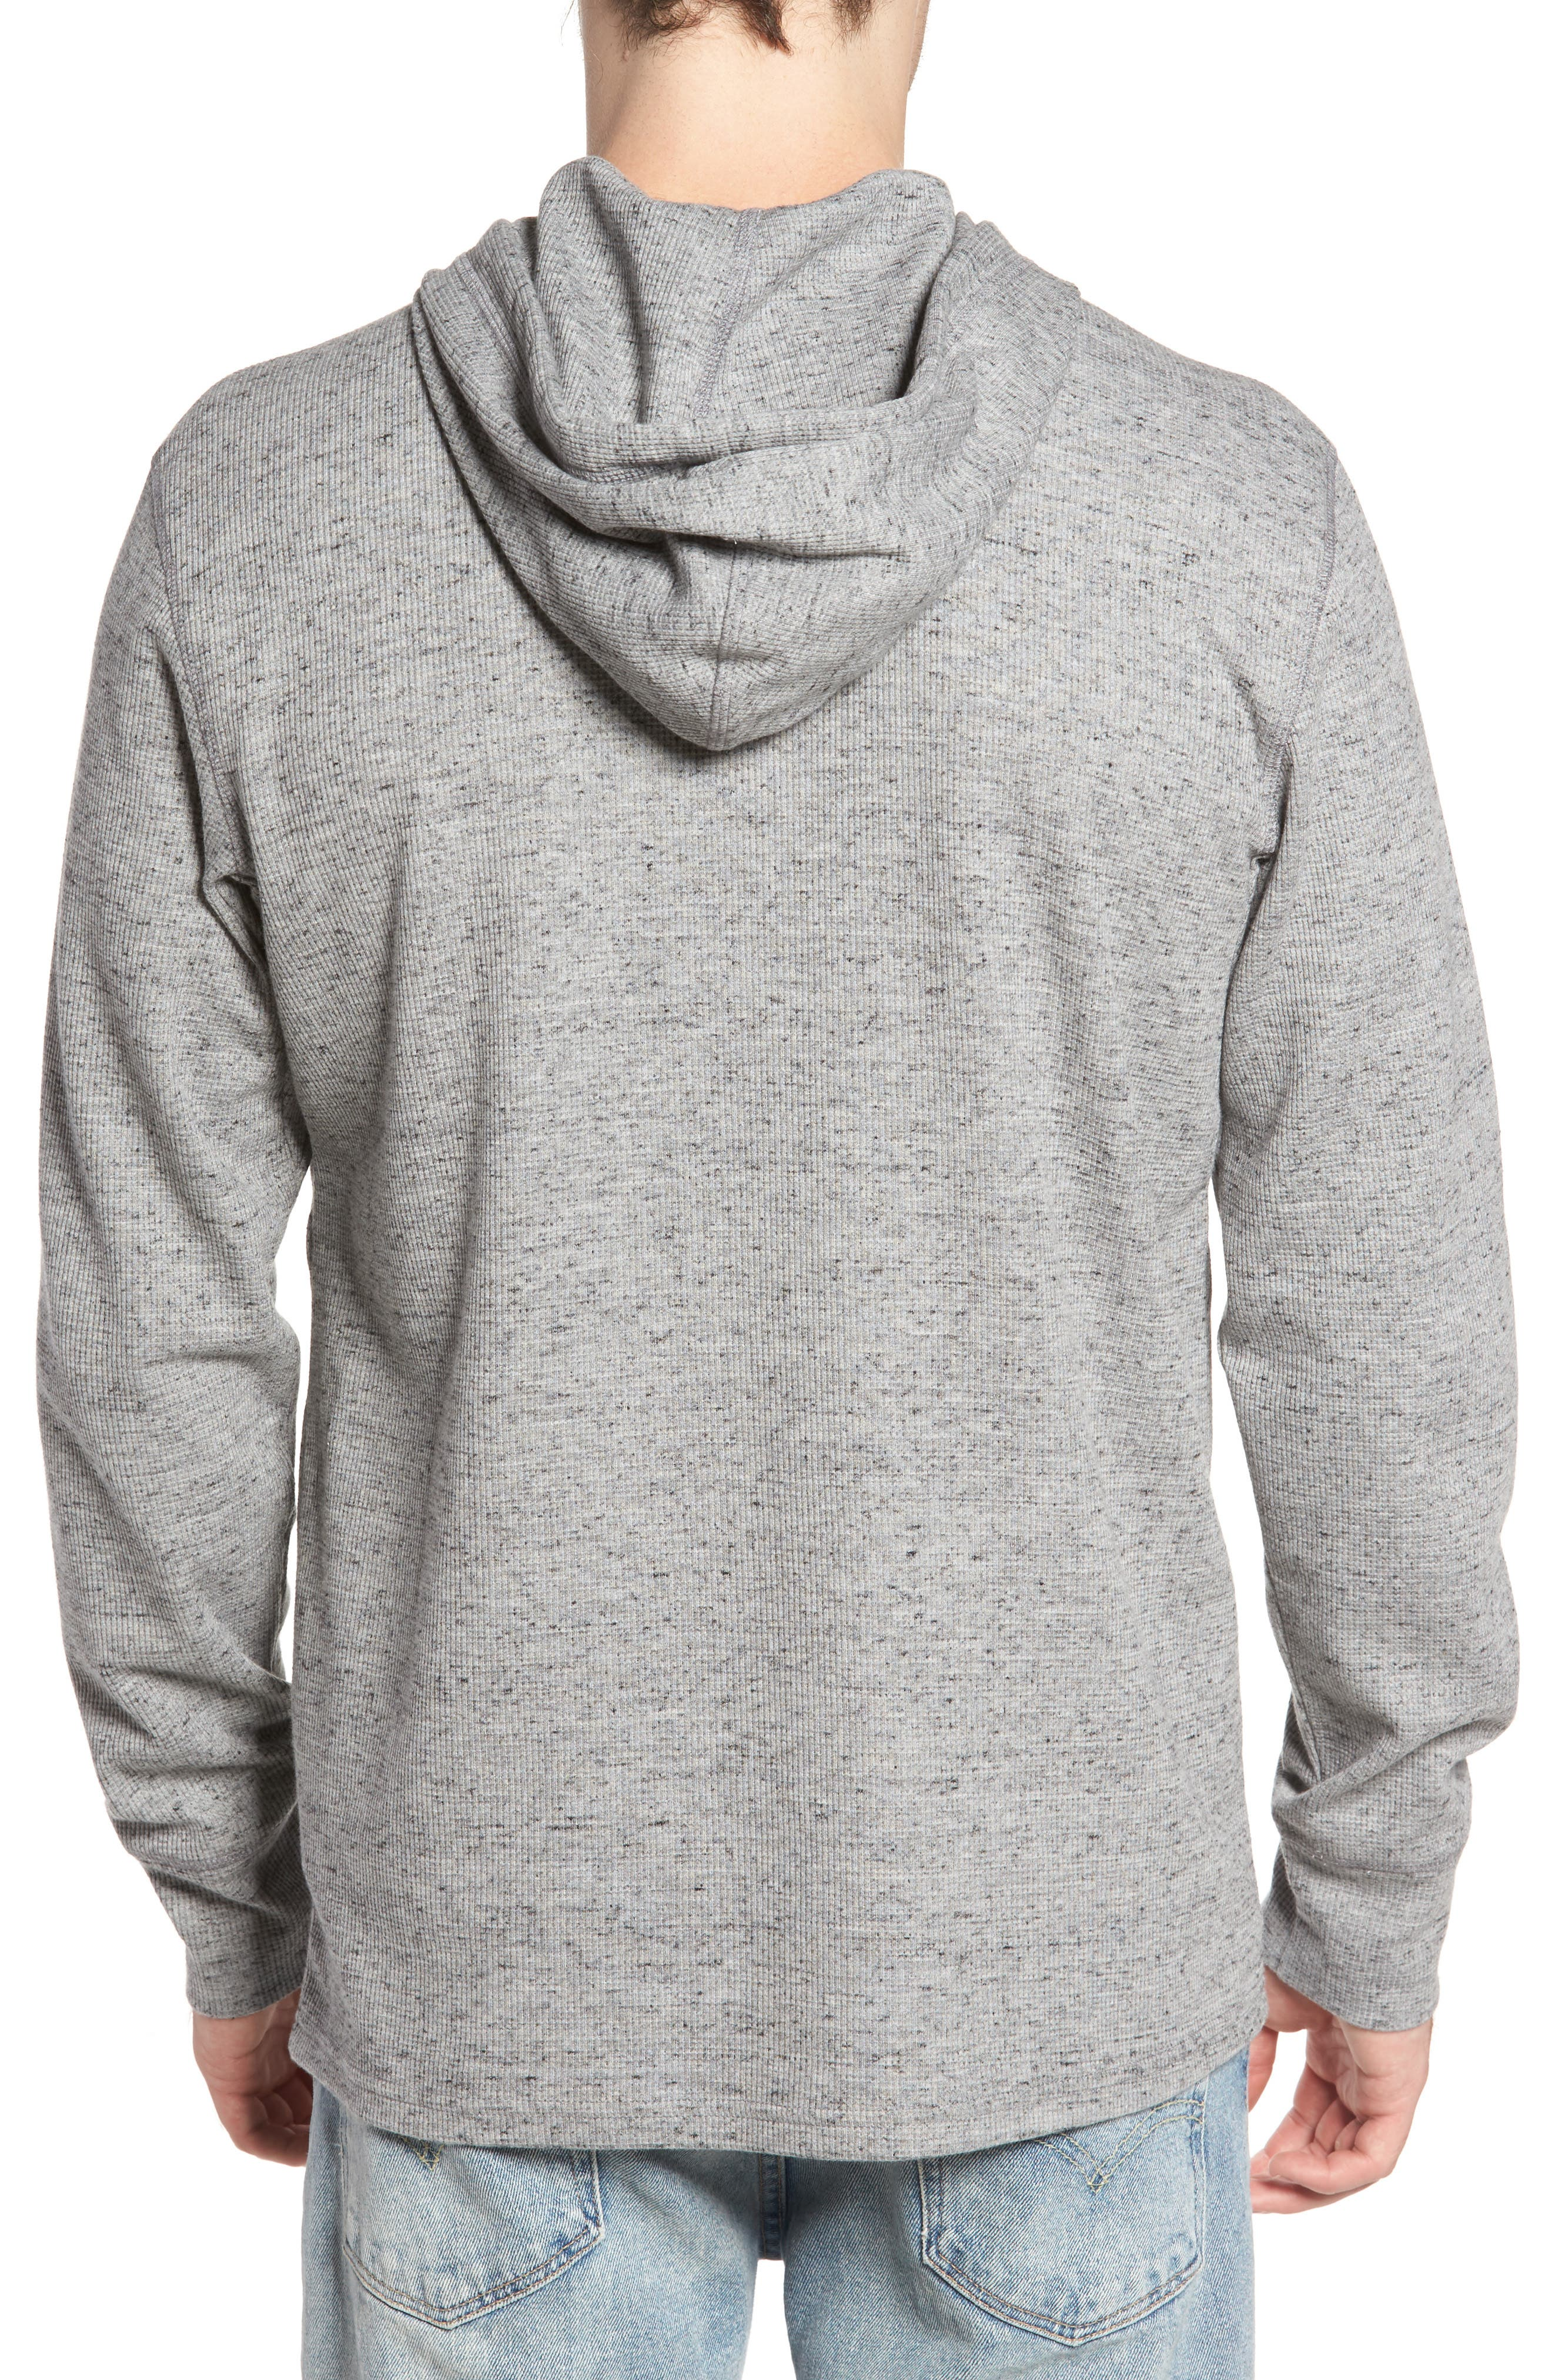 Boldin Thermal Pullover Hoodie,                             Alternate thumbnail 2, color,                             039